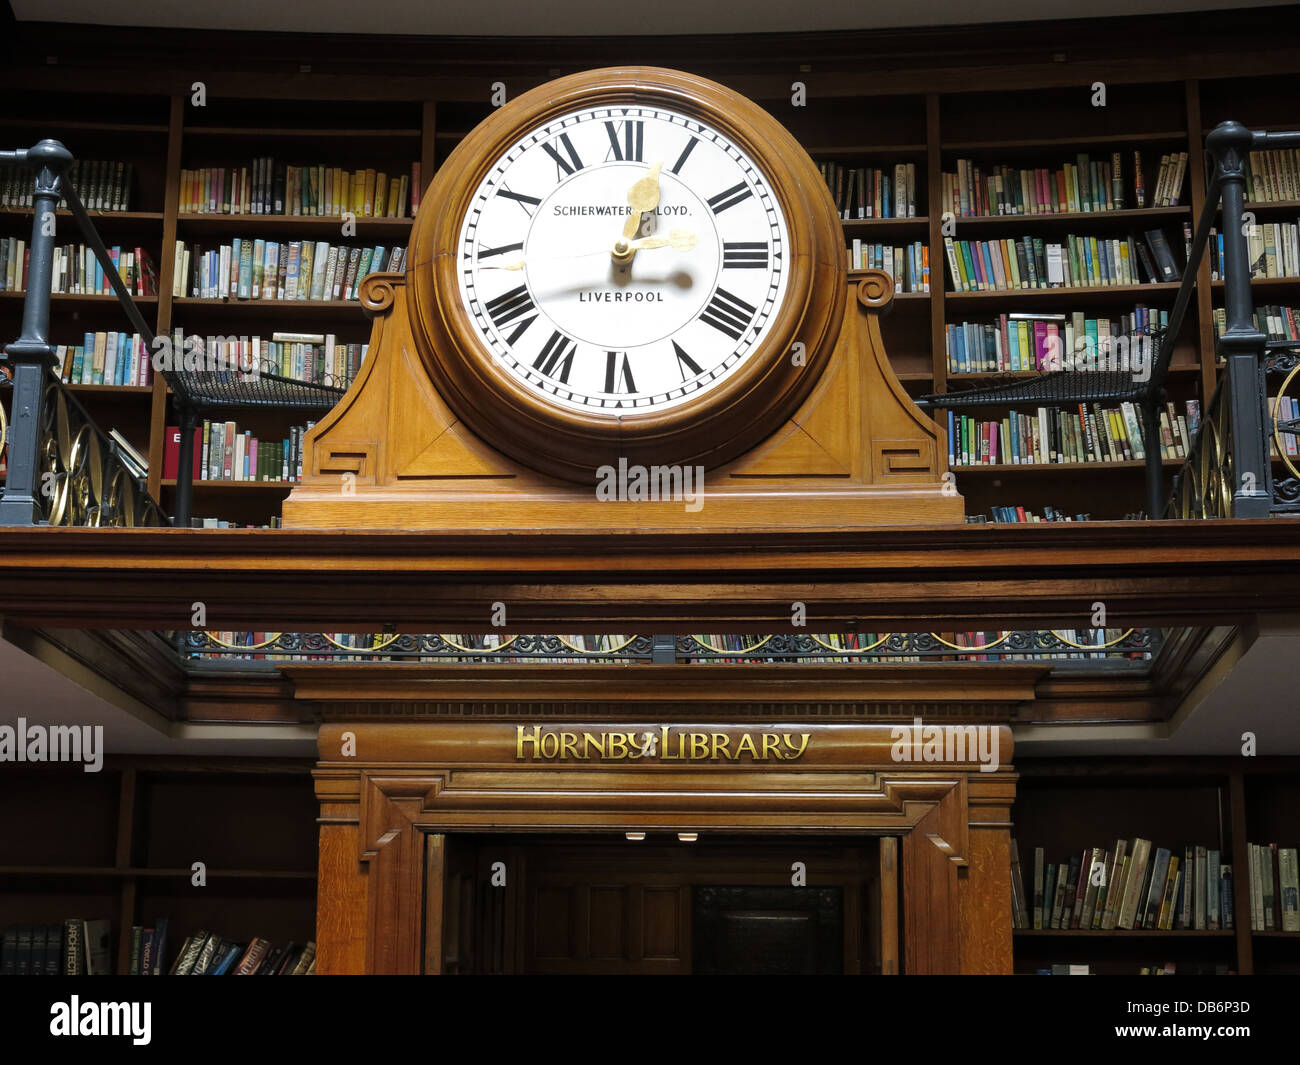 Liverpool Central Library - Stock Image